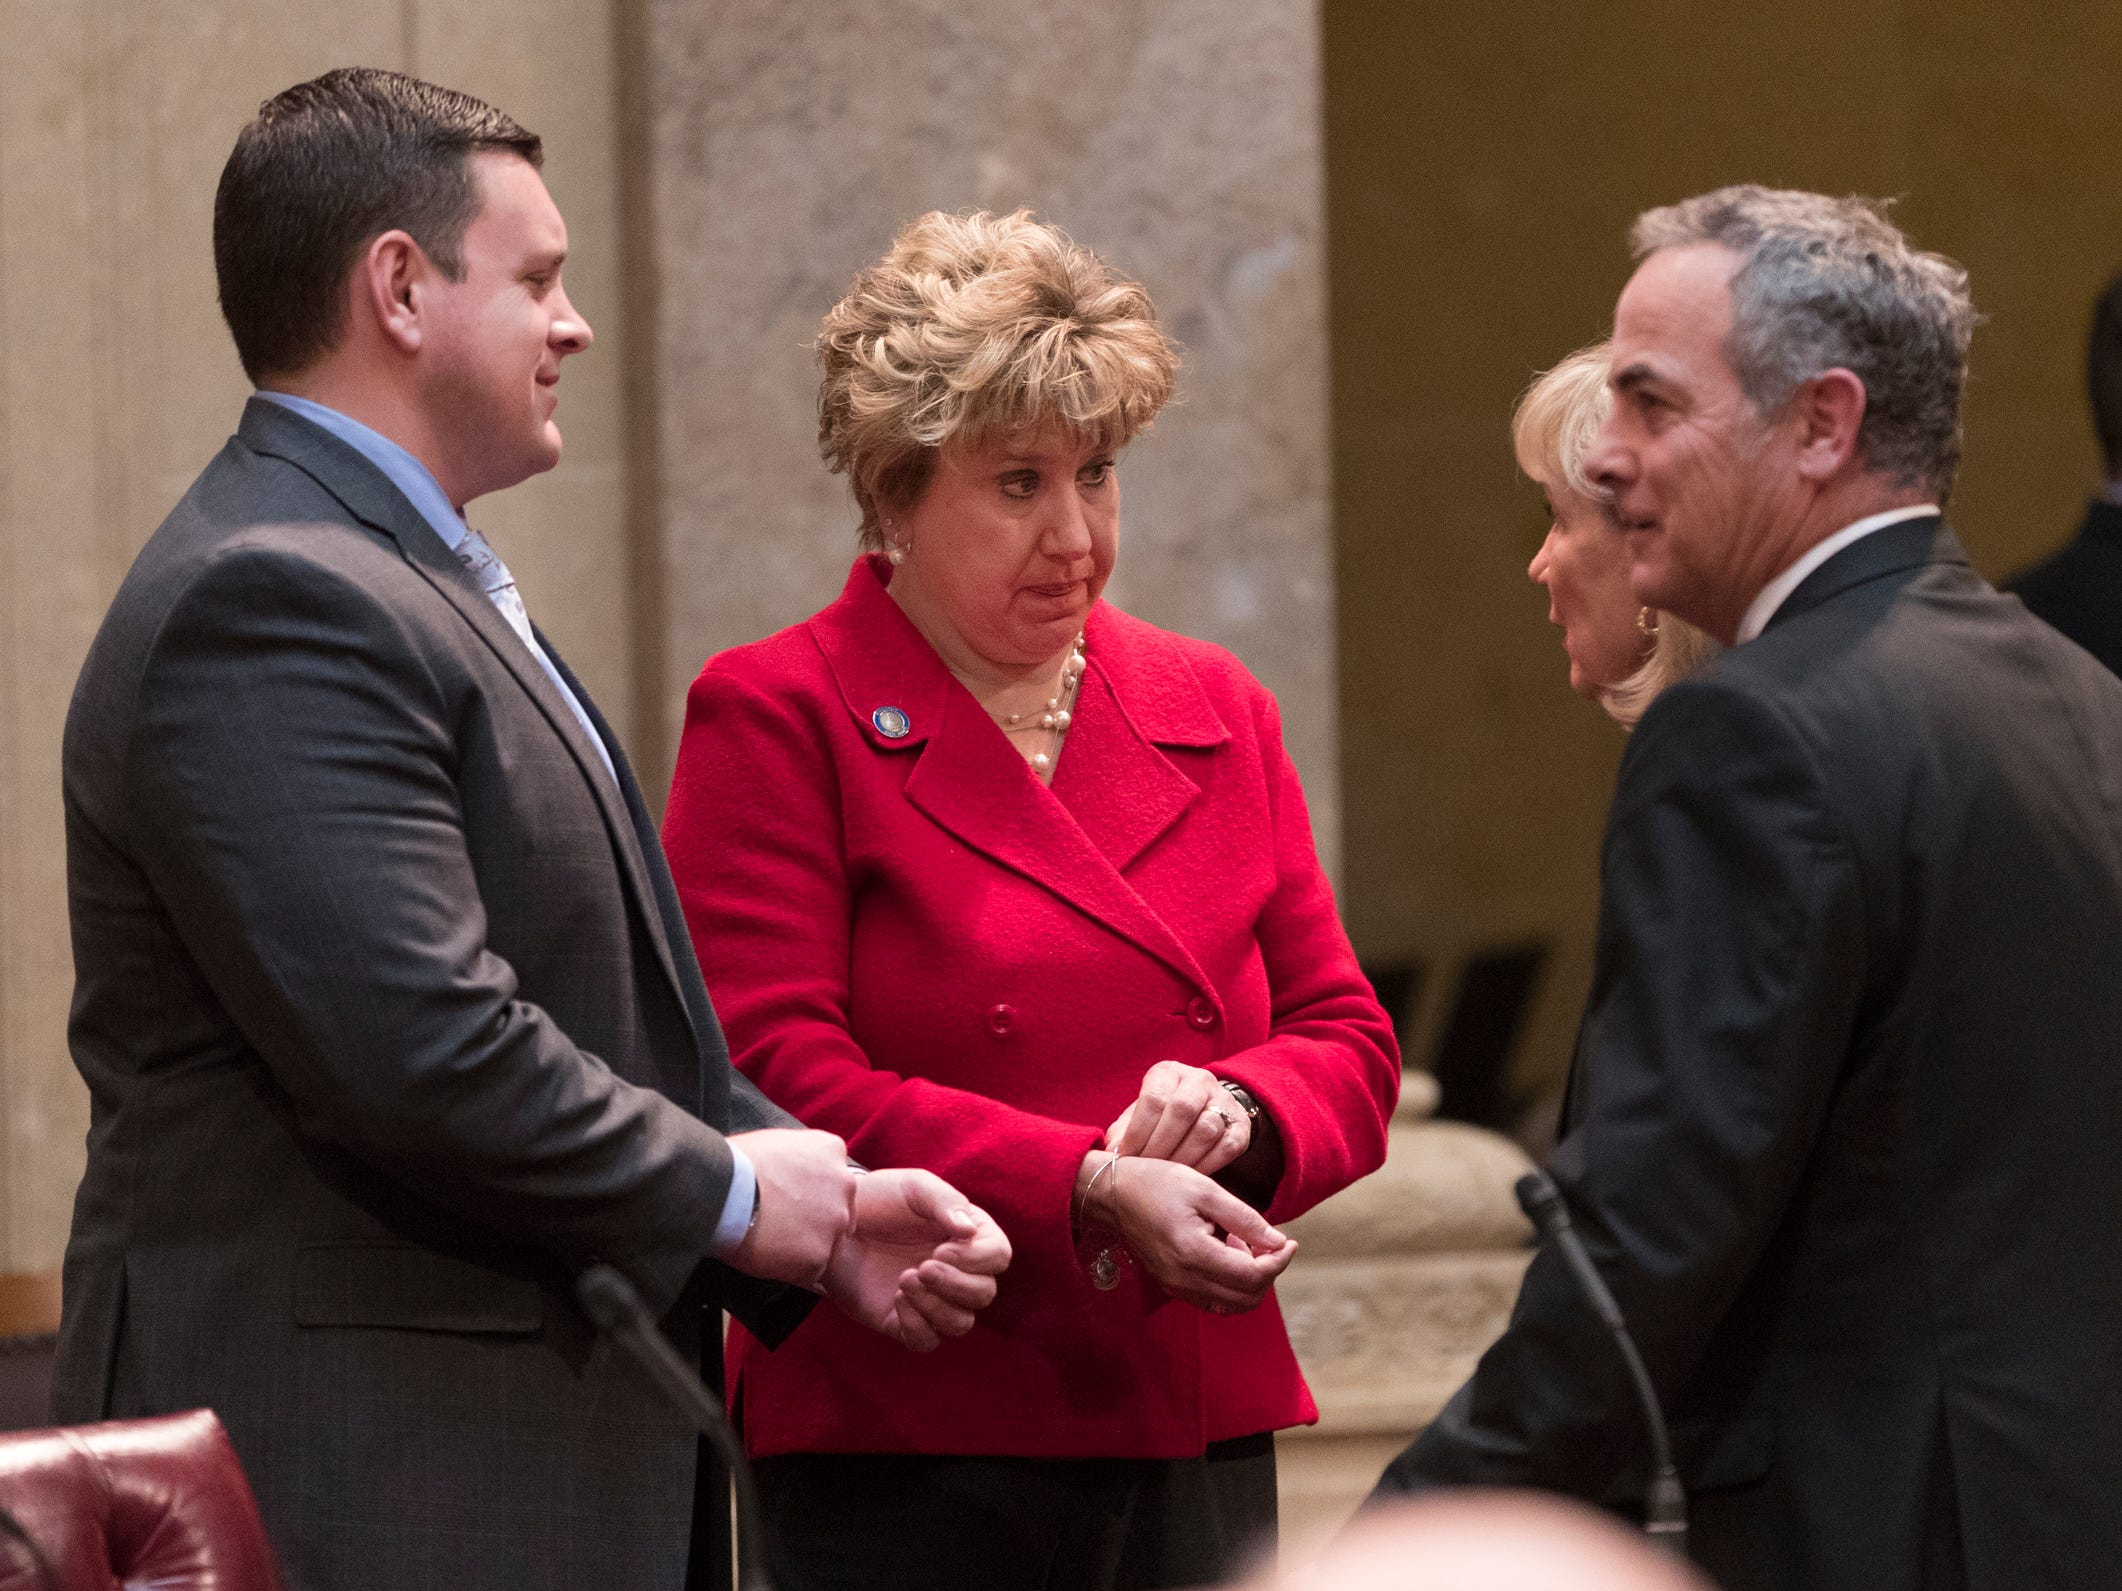 State Sen. Patrick Testin, R-Stevens Point (from left), speaks with Senate Minority Leader Jennifer Schilling, D-La Crosse, state Sen. Alberta Darling, R-River Hills,  and state Sen. Jon Erpenbach, D-Middleton, on Tuesday